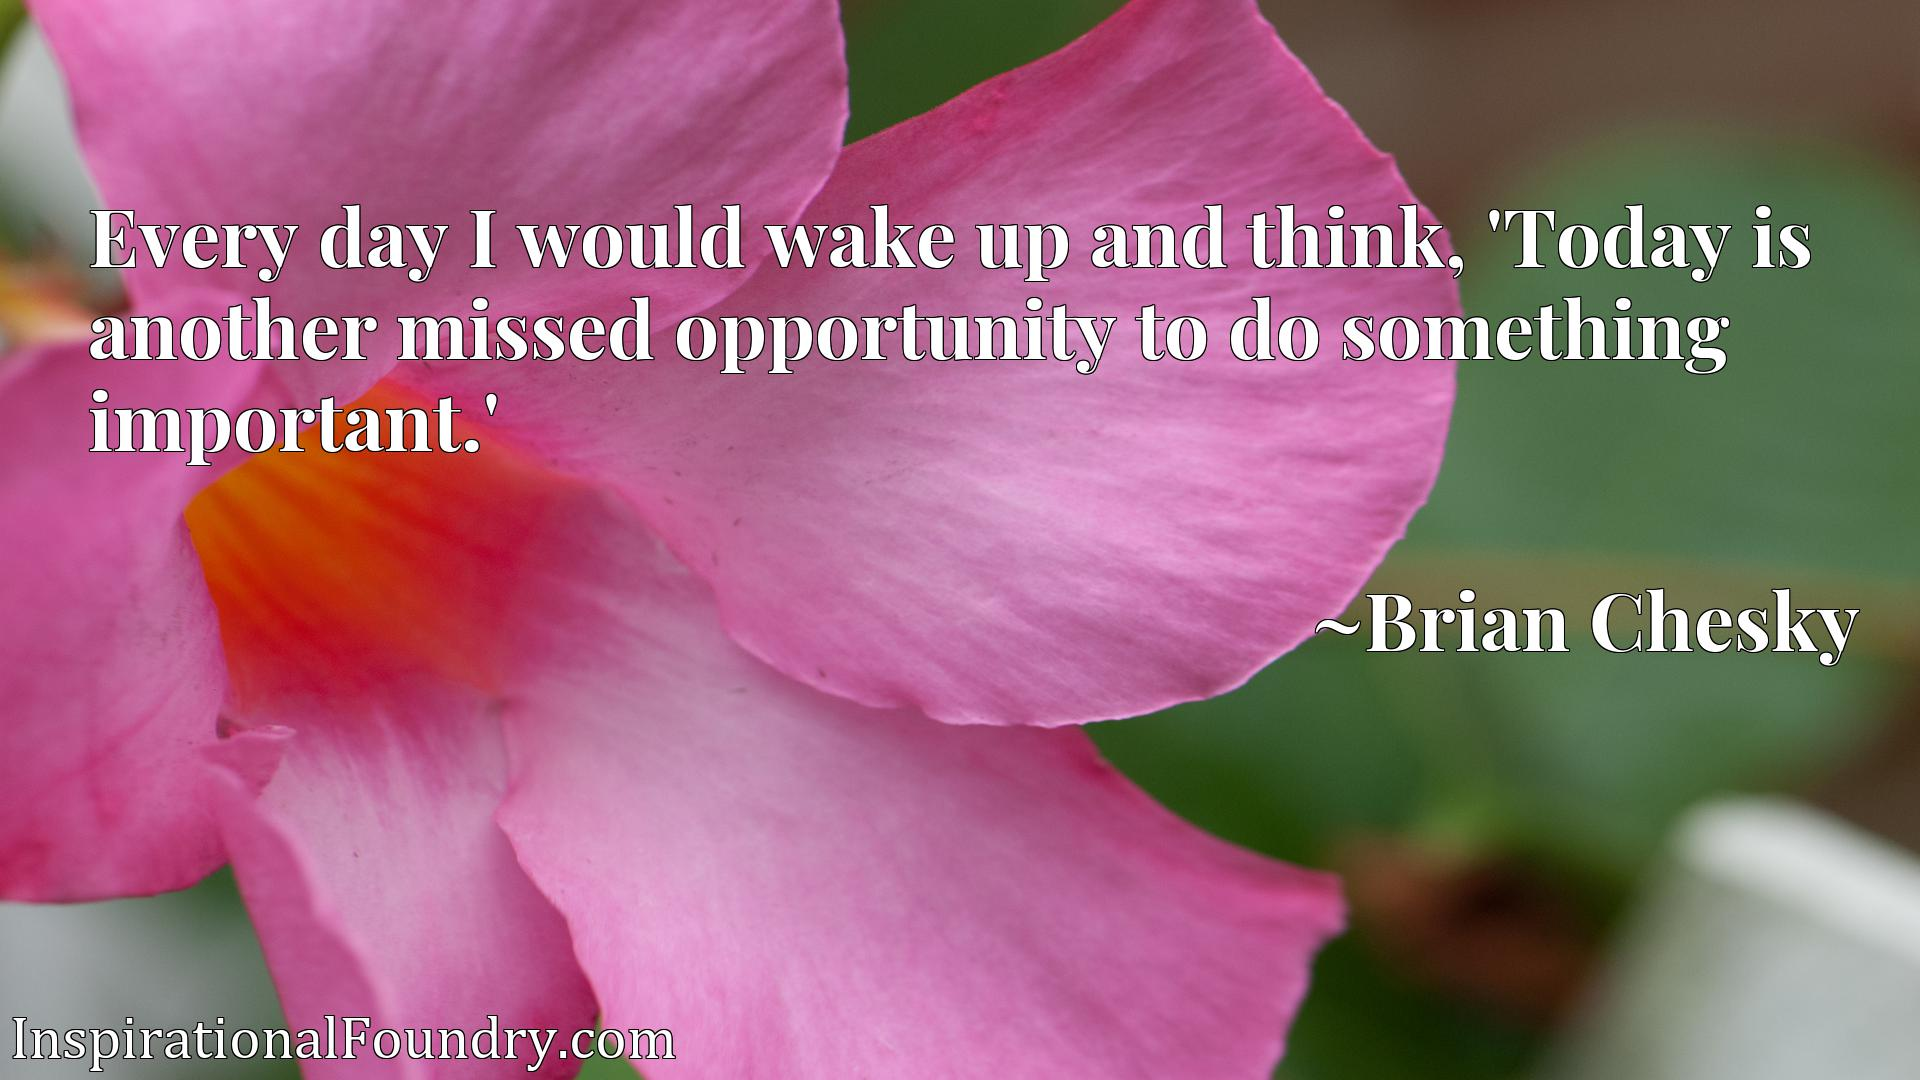 Every day I would wake up and think, 'Today is another missed opportunity to do something important.'